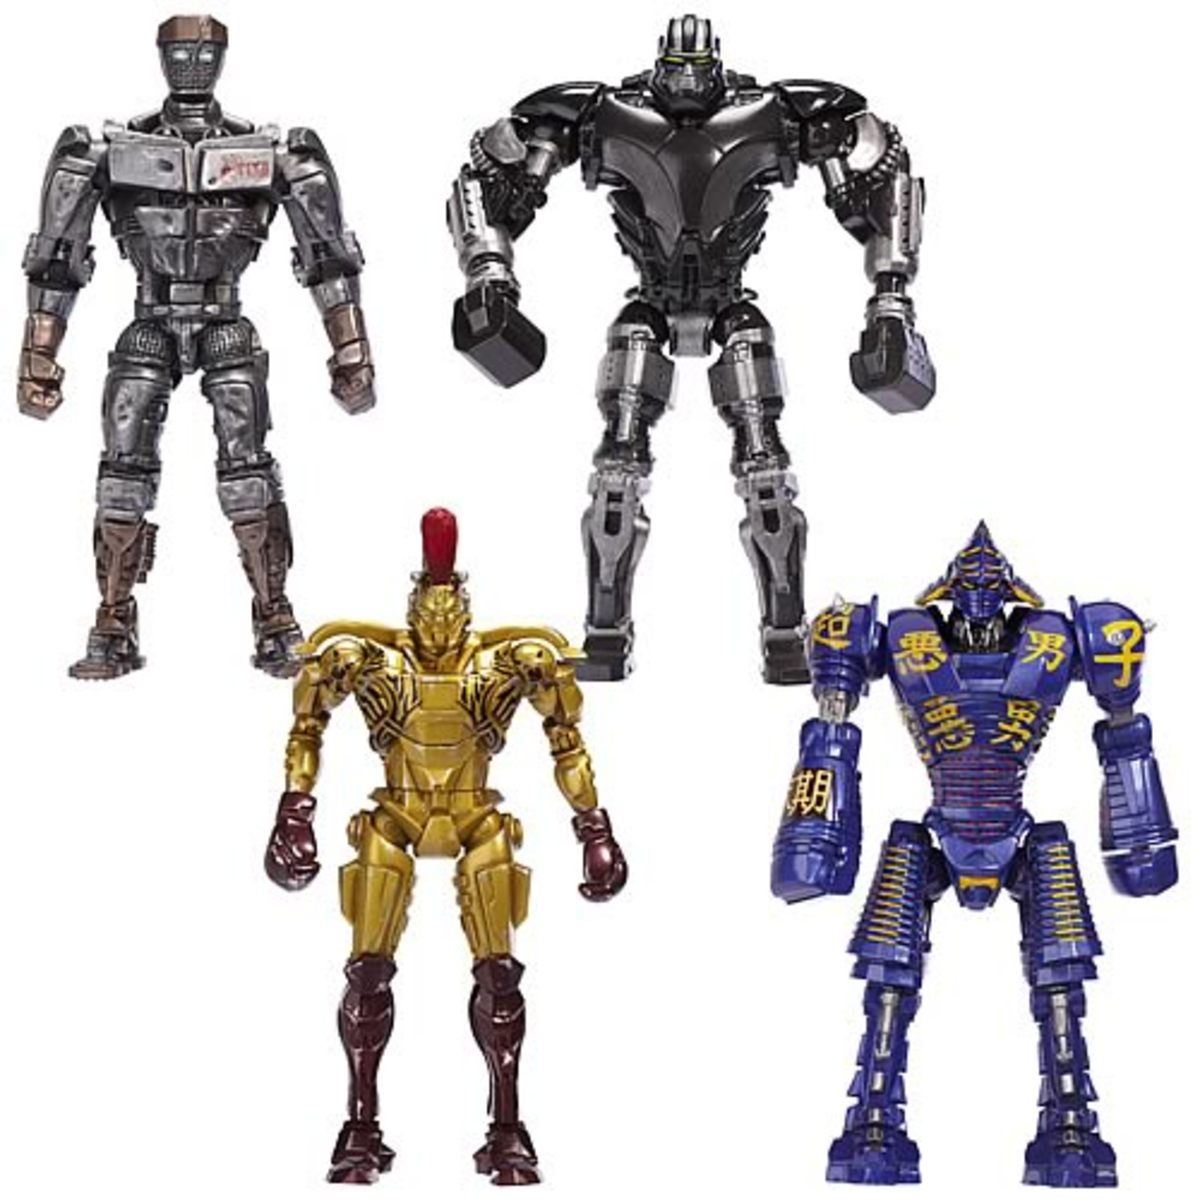 Real Steel robot names: Atom V1 and 'The King of Robots' Zeus, electric blue Noisy Boy and gold-plated Midas.